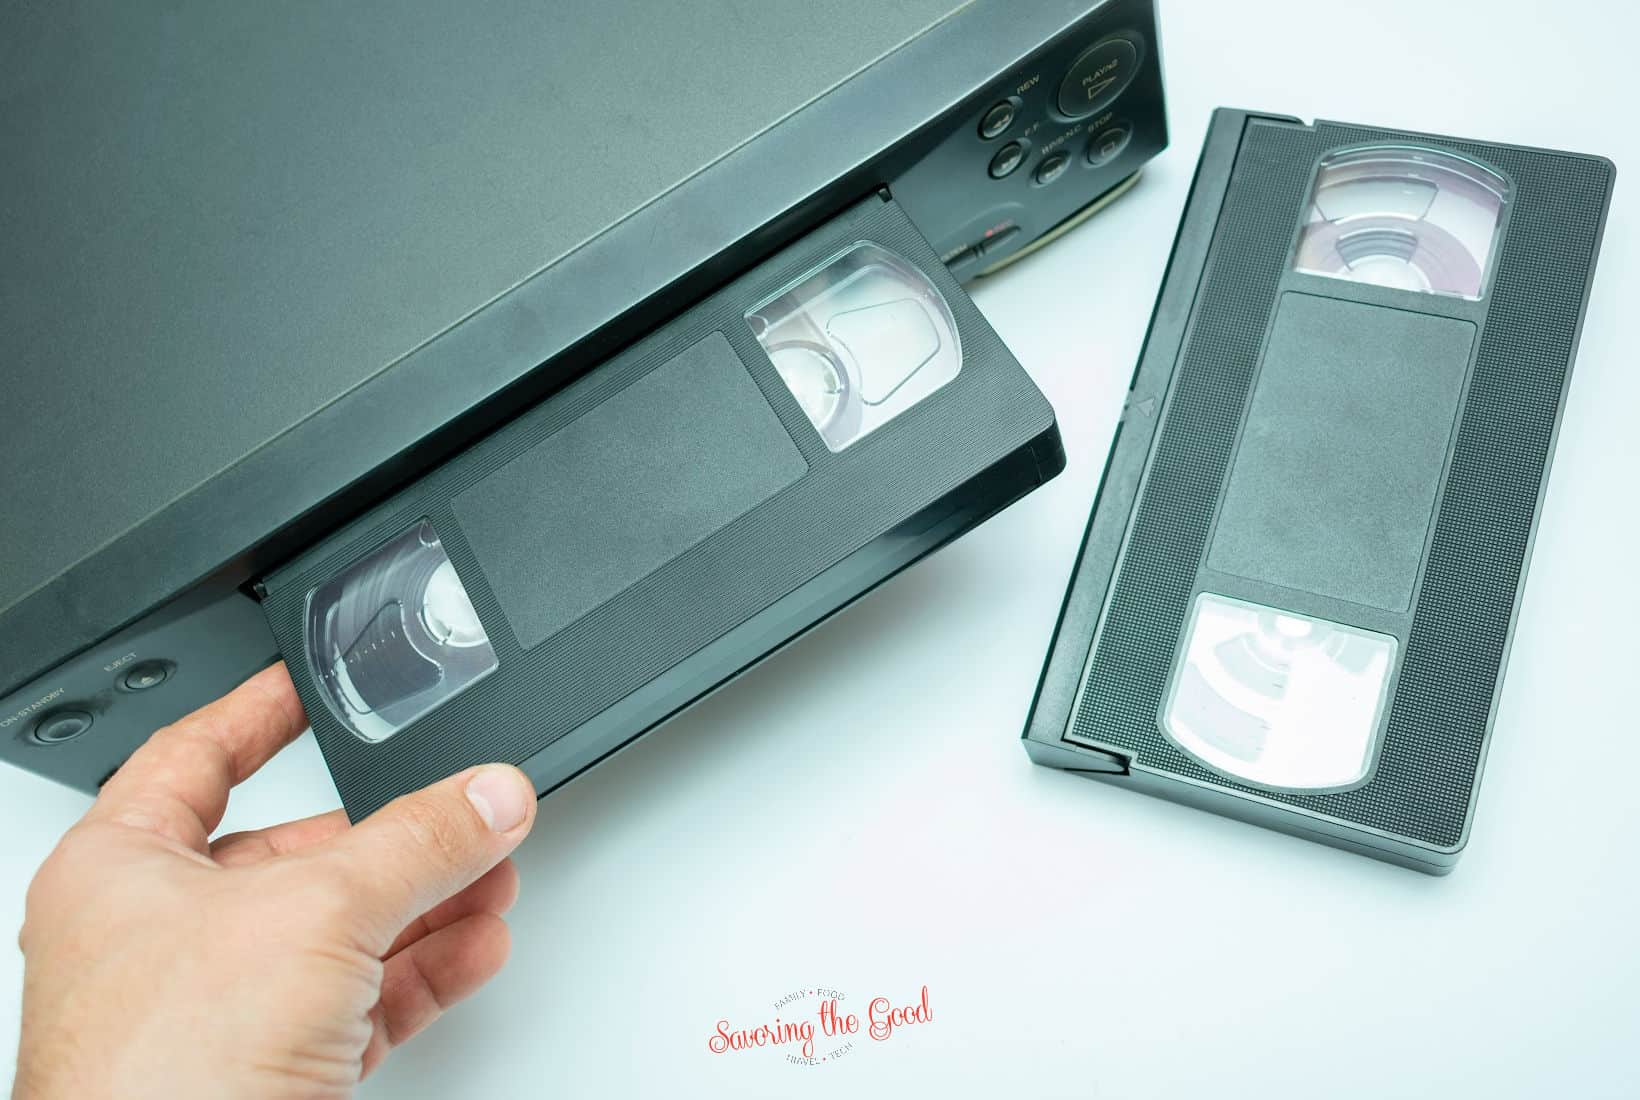 vcr and vcr recorder